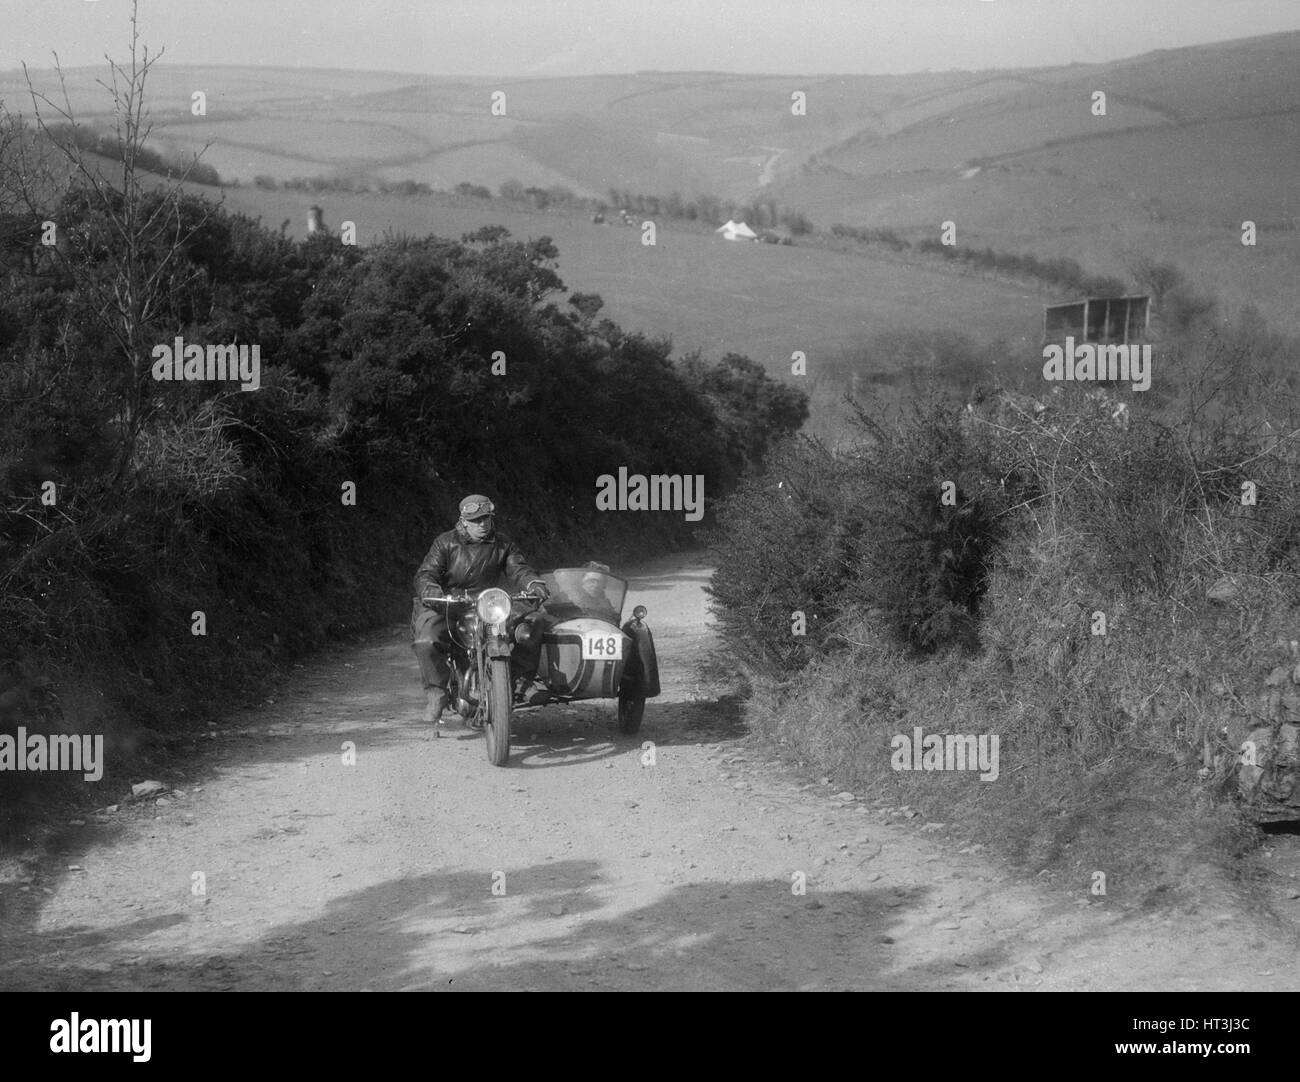 497 cc Ariel and sidecar of R Newman at the MCC Lands End Trial, Beggars Roost, Devon, 1936. Artist: Bill Brunell. - Stock Image